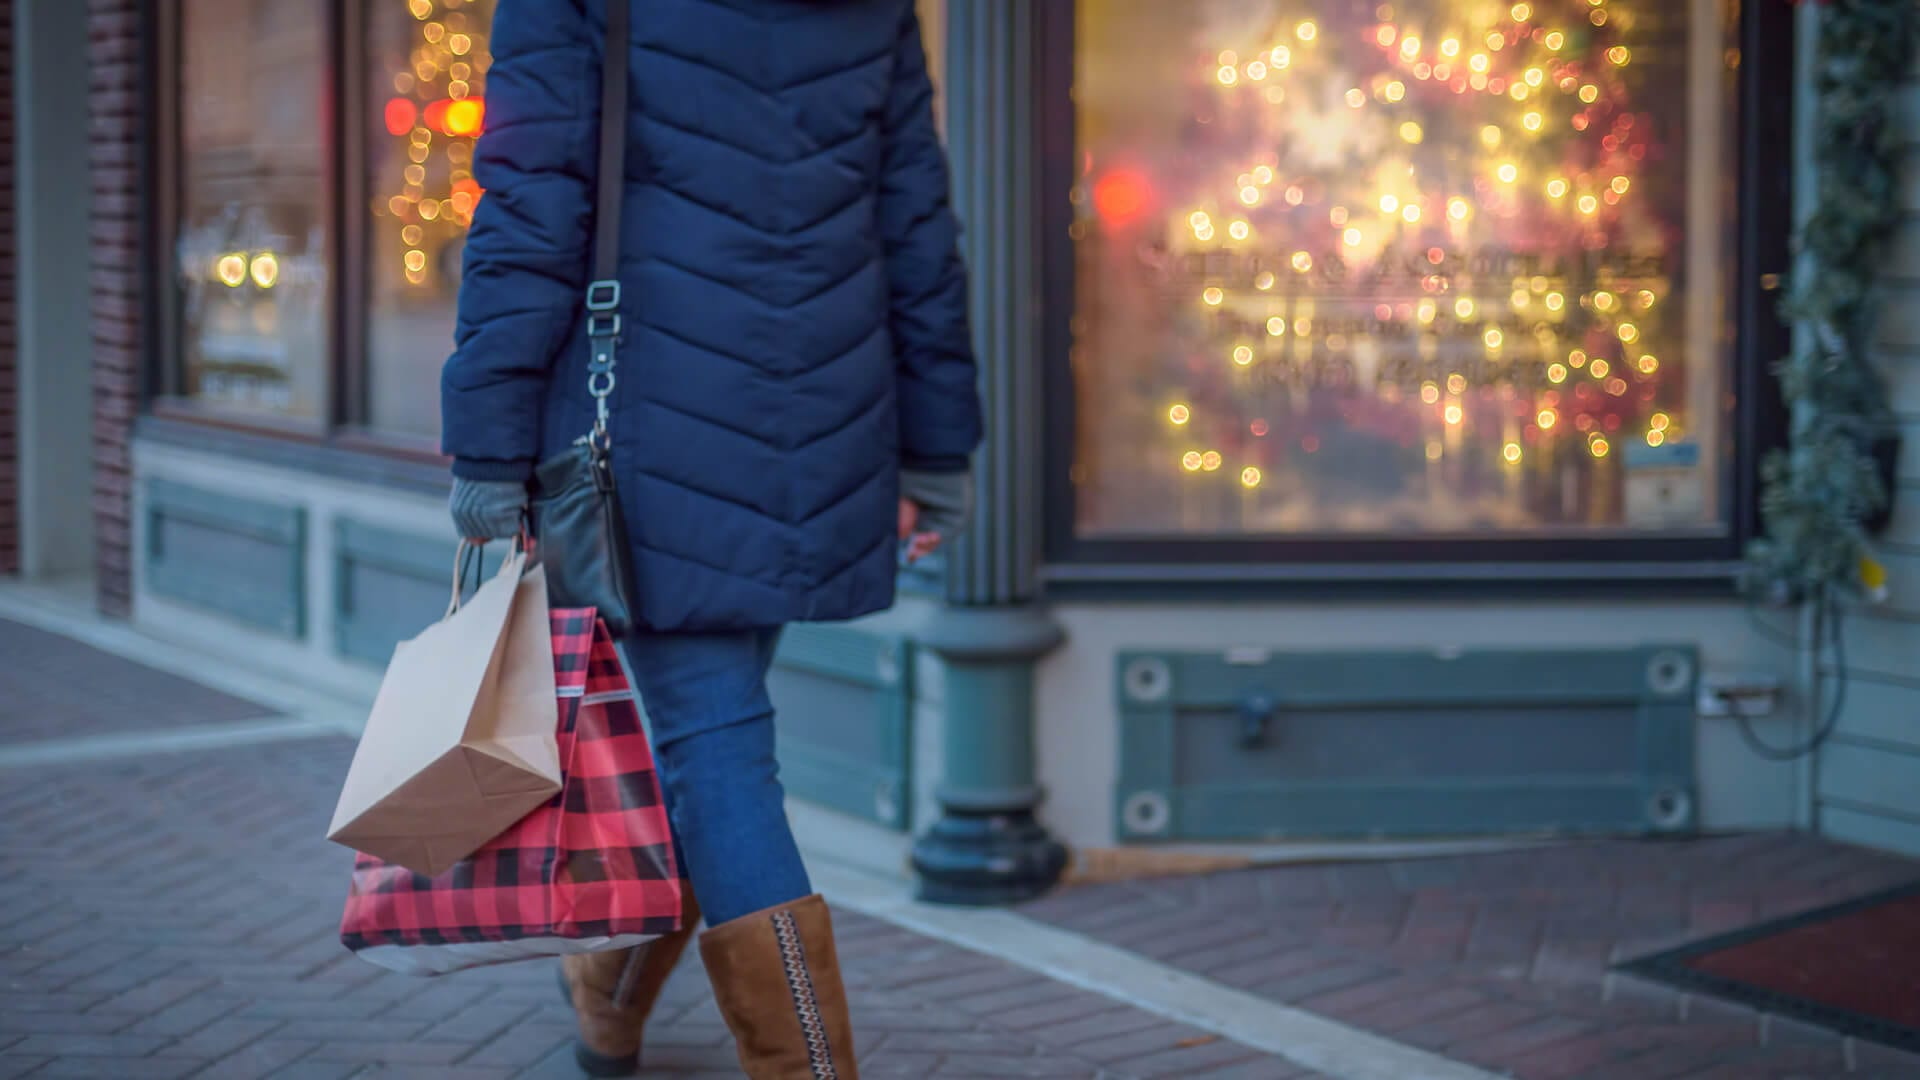 COVID-19 Will Effect This Holiday Season prepping your business.